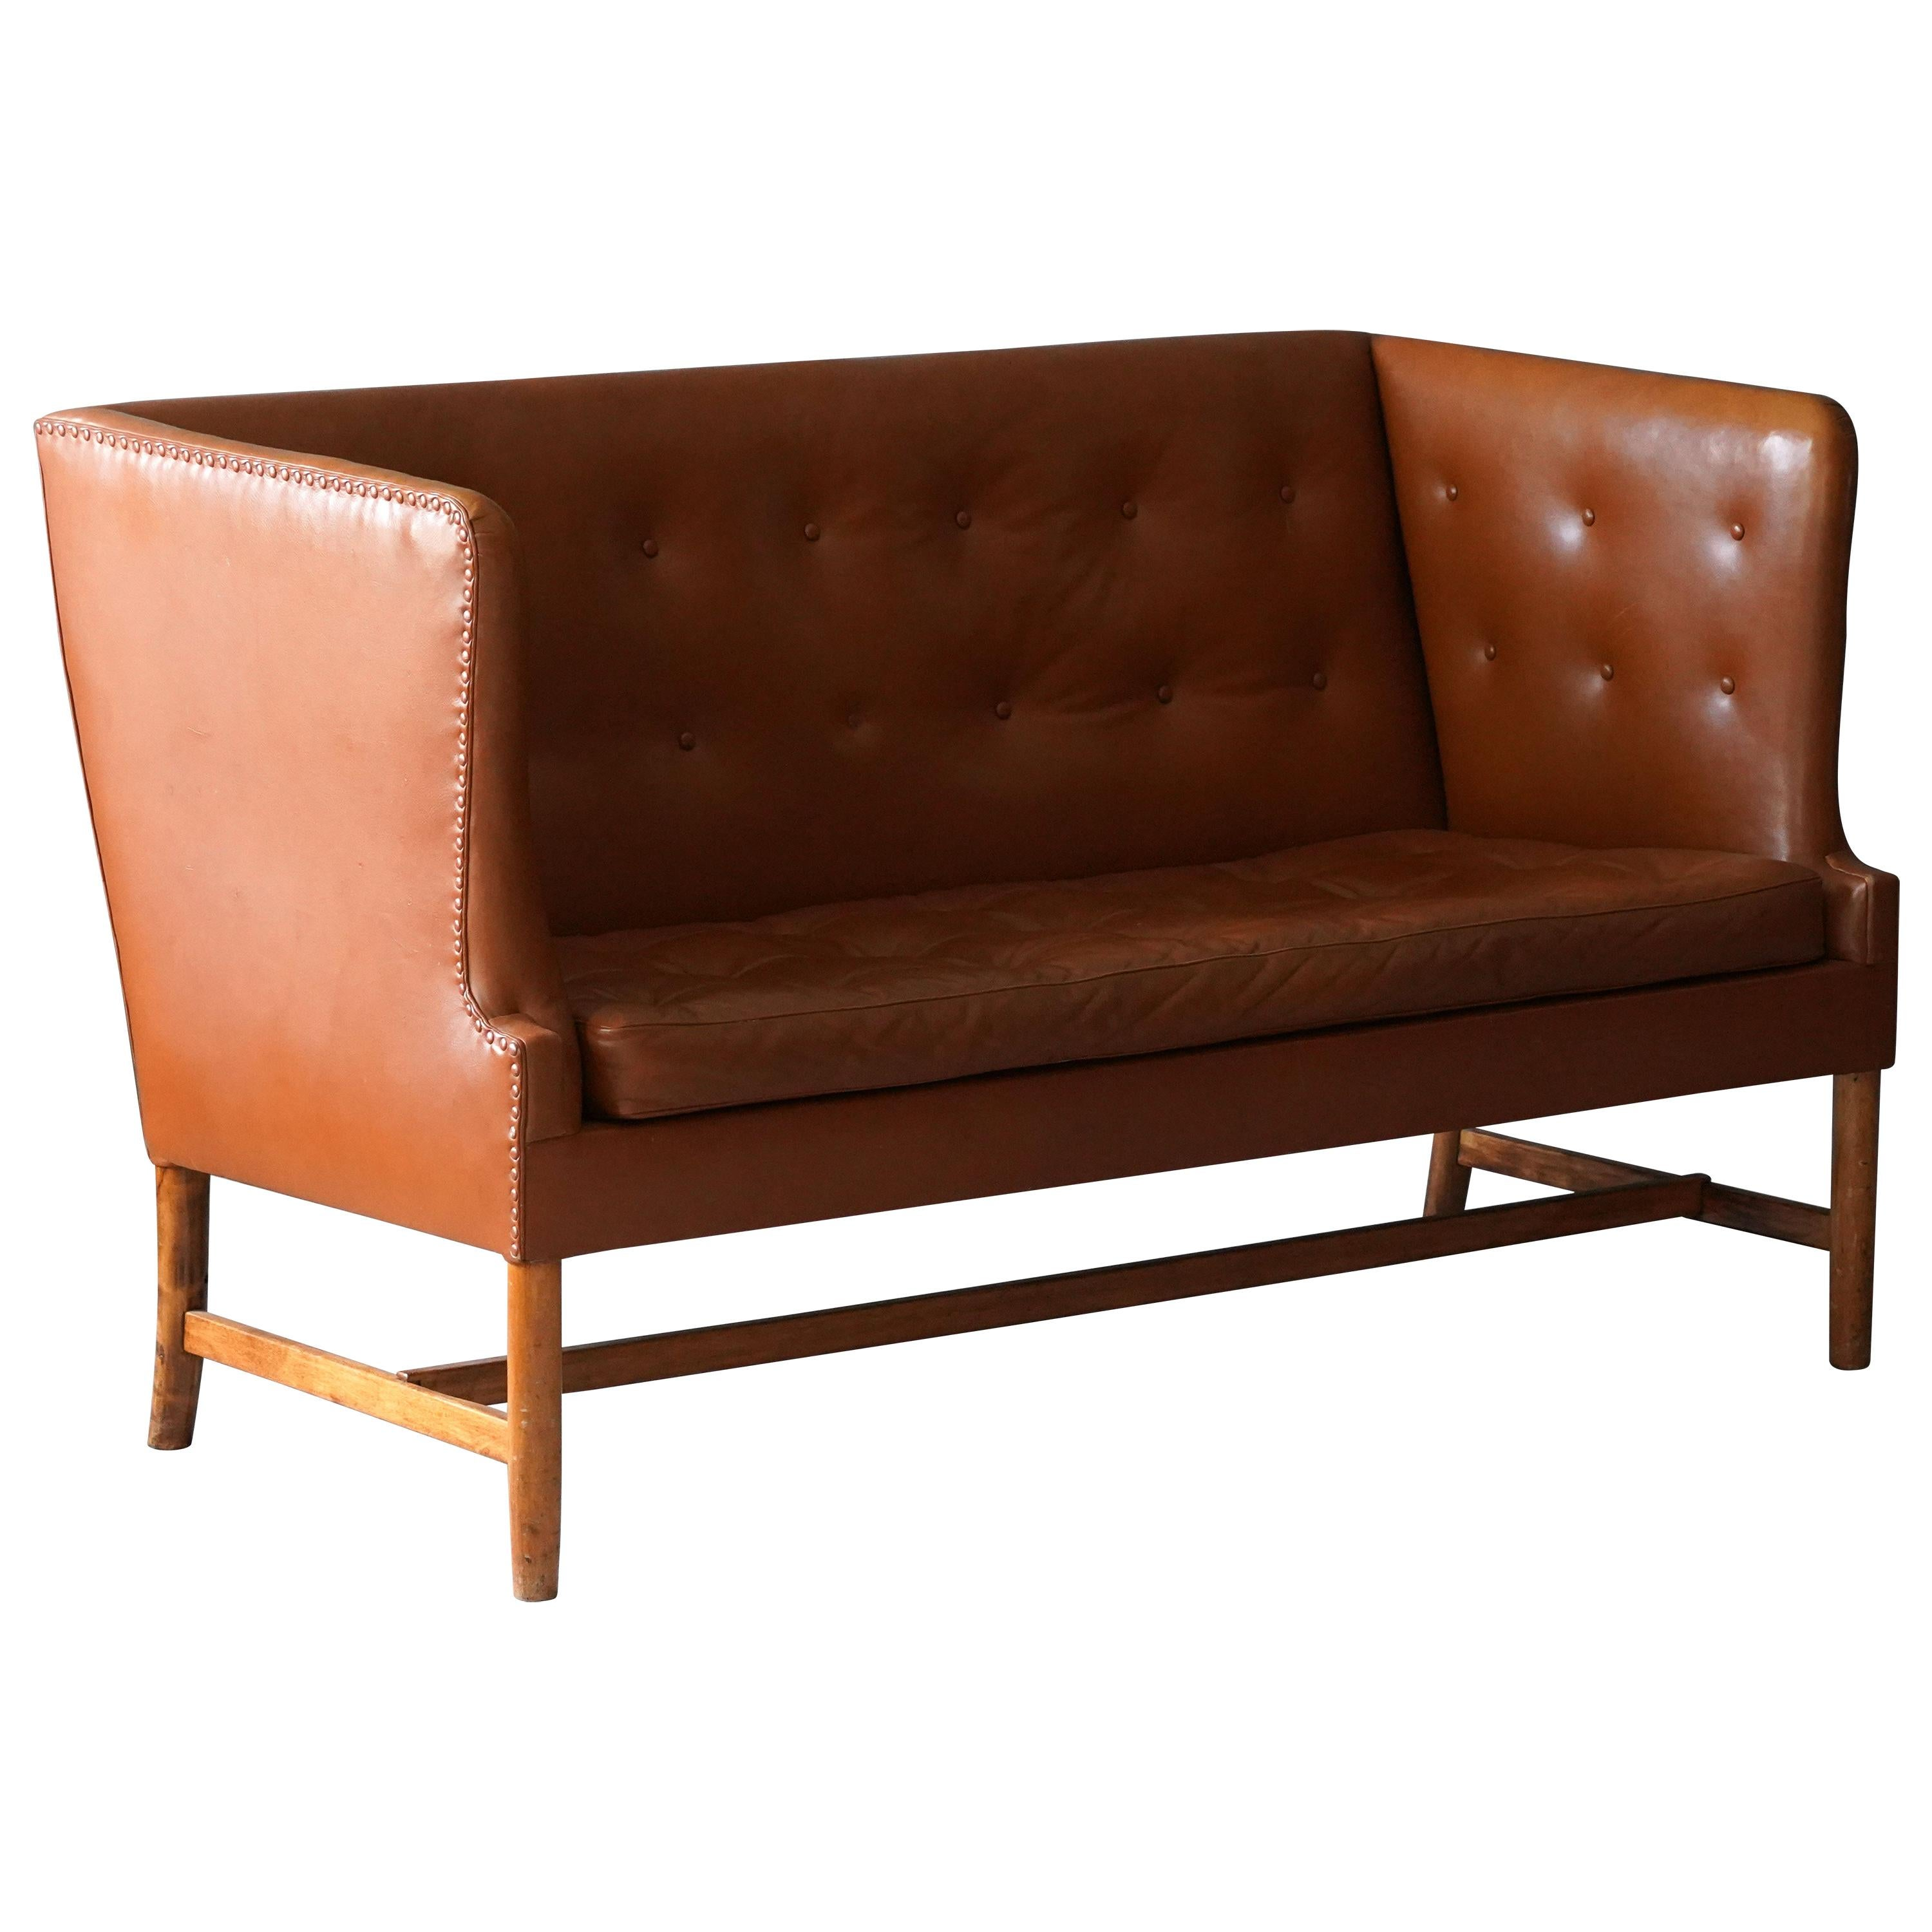 Ole Wanscher, Two-Seat Sofa, Leather, Wood, for A.J. Iversen, Denmark, 1950s